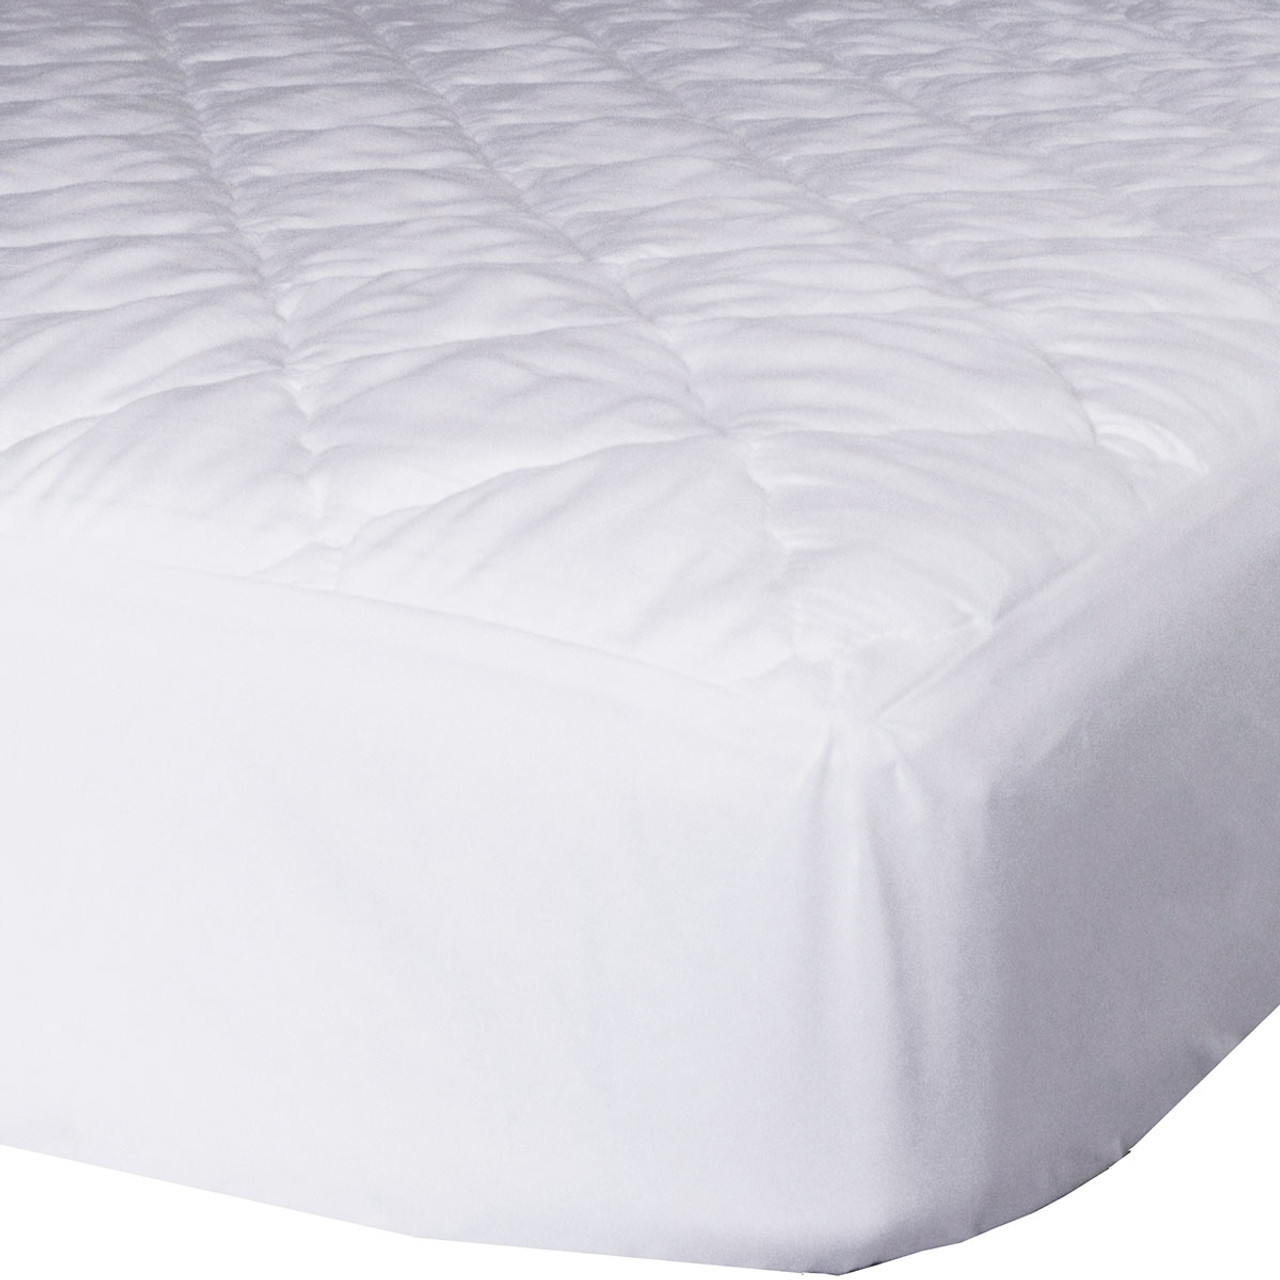 Ab Lifestyles Quality Bedding For Airstream Rv Sheets Mattresses Bedspreads Comforters Pillows Blankets Towels Gifts